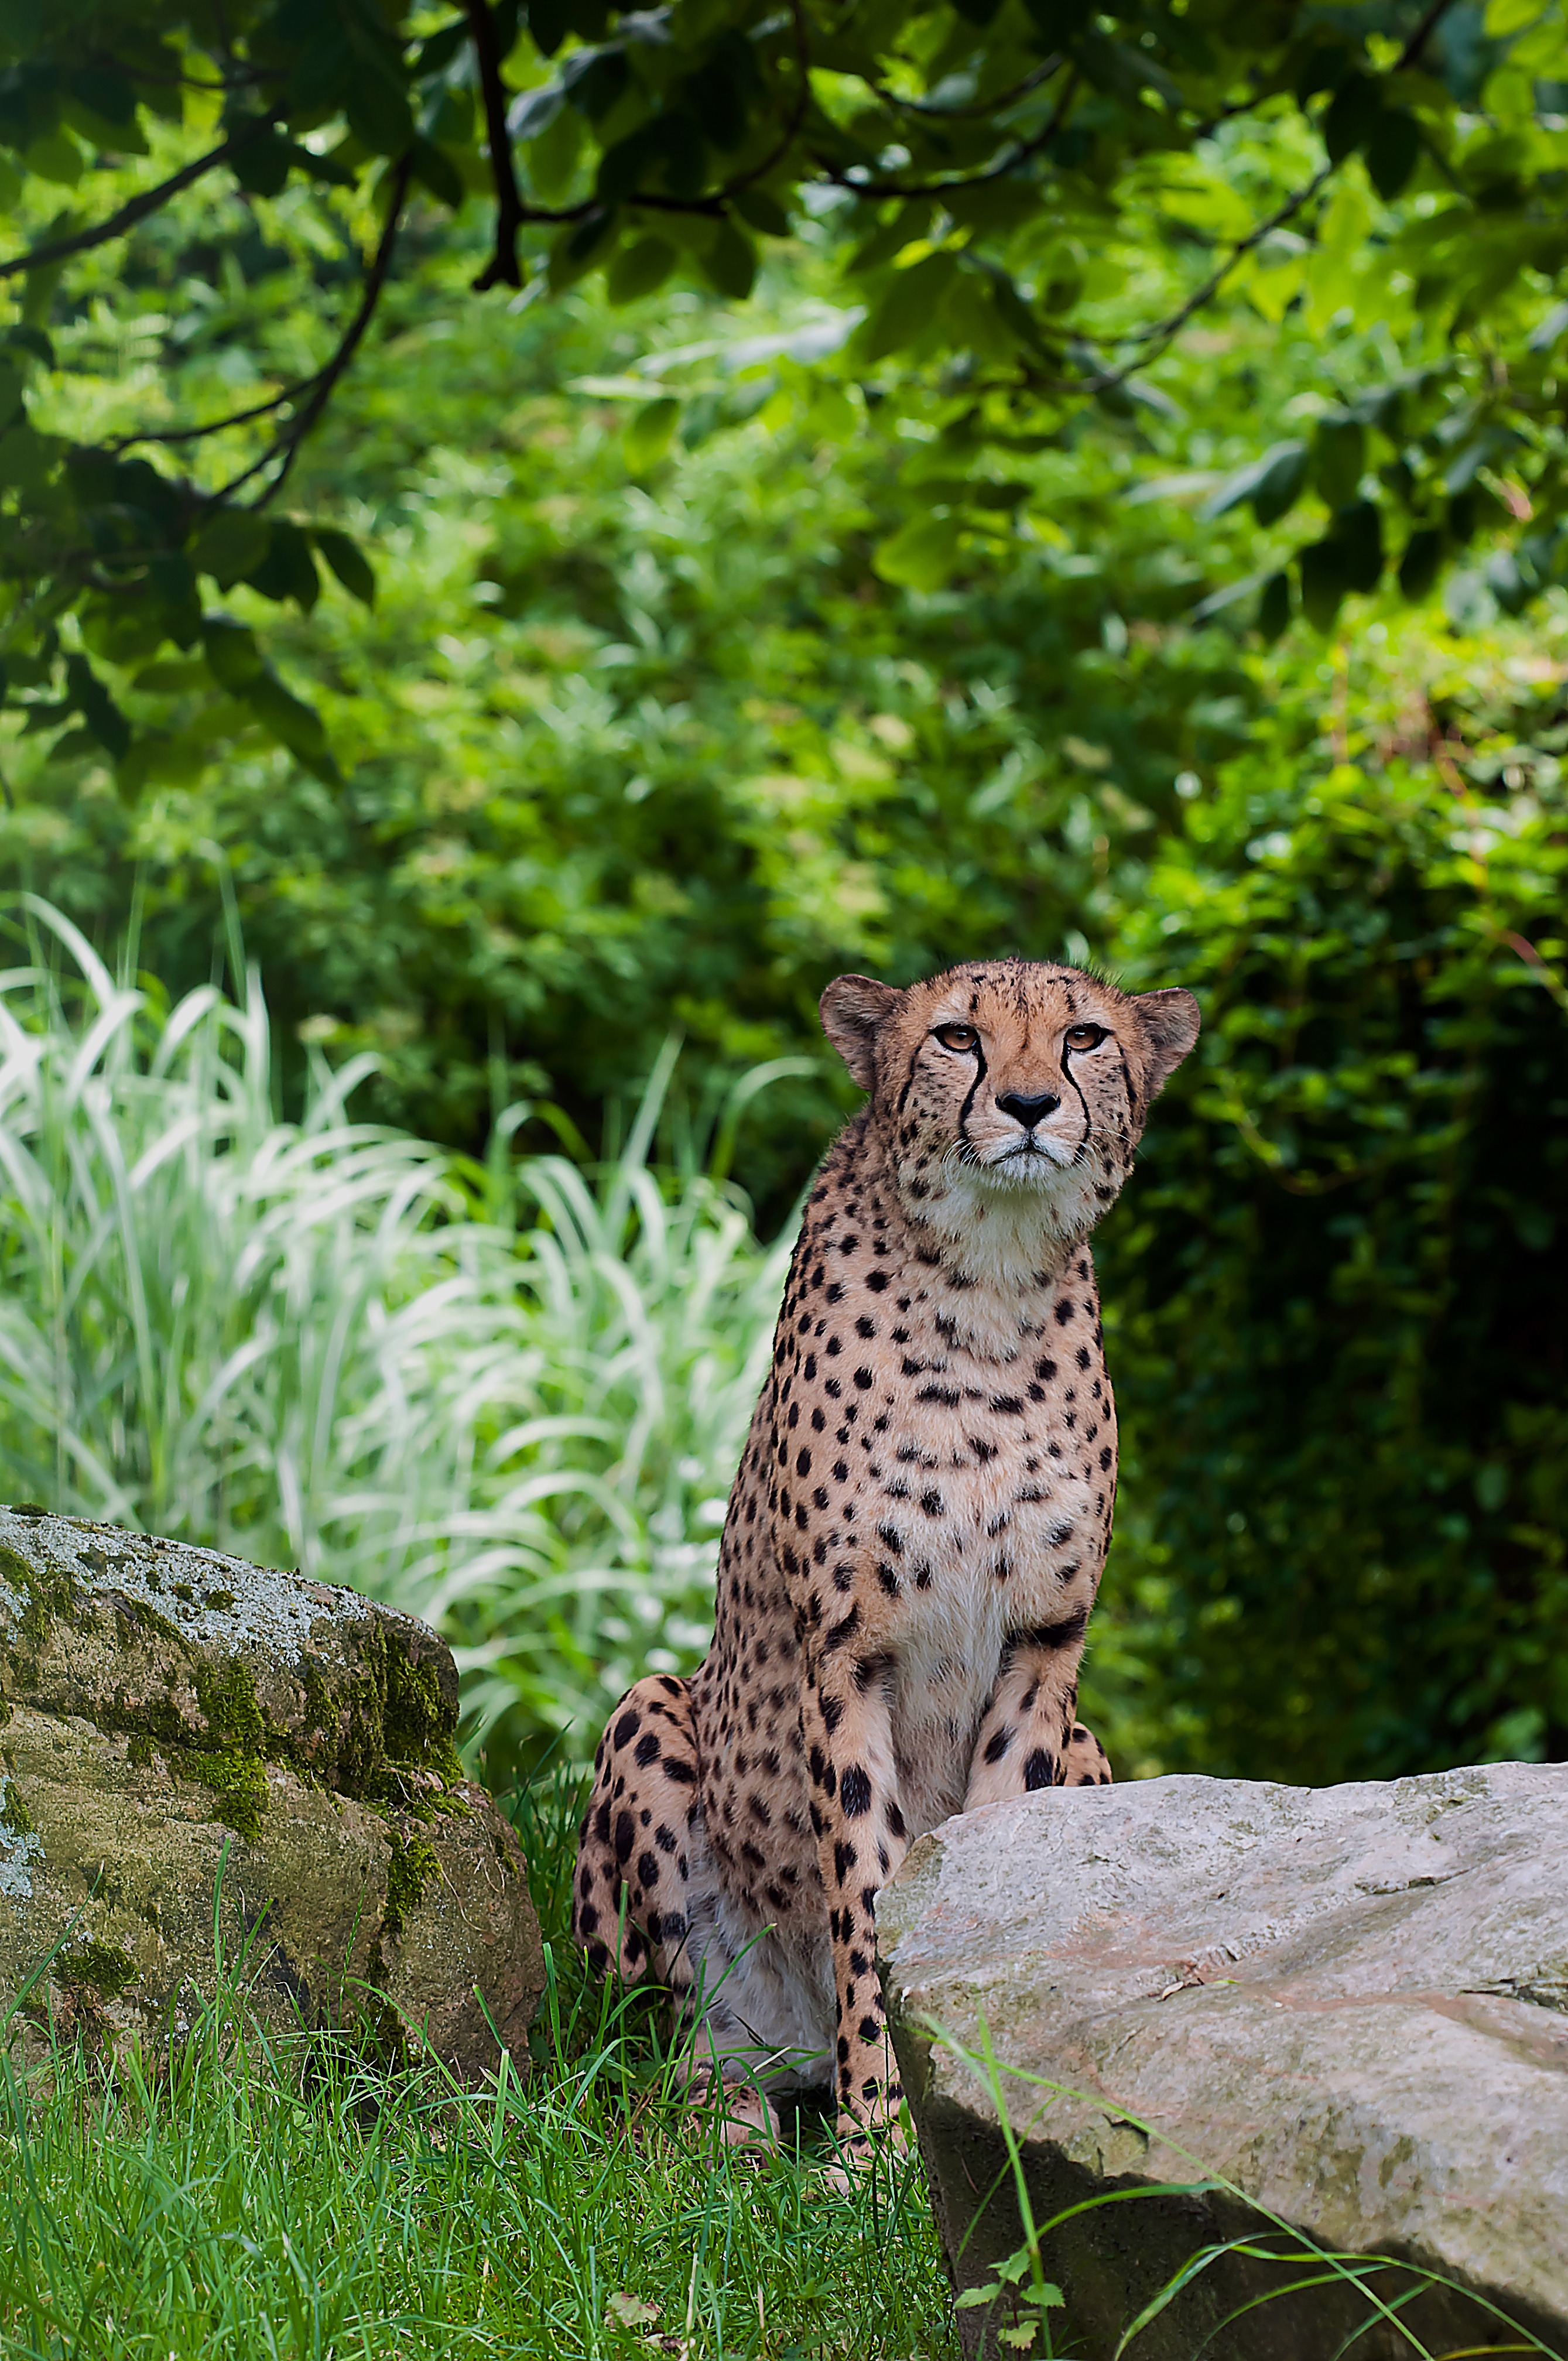 Hd Nature Wallpapers For Windows 7 Free Download Adult Cheetah 183 Free Stock Photo